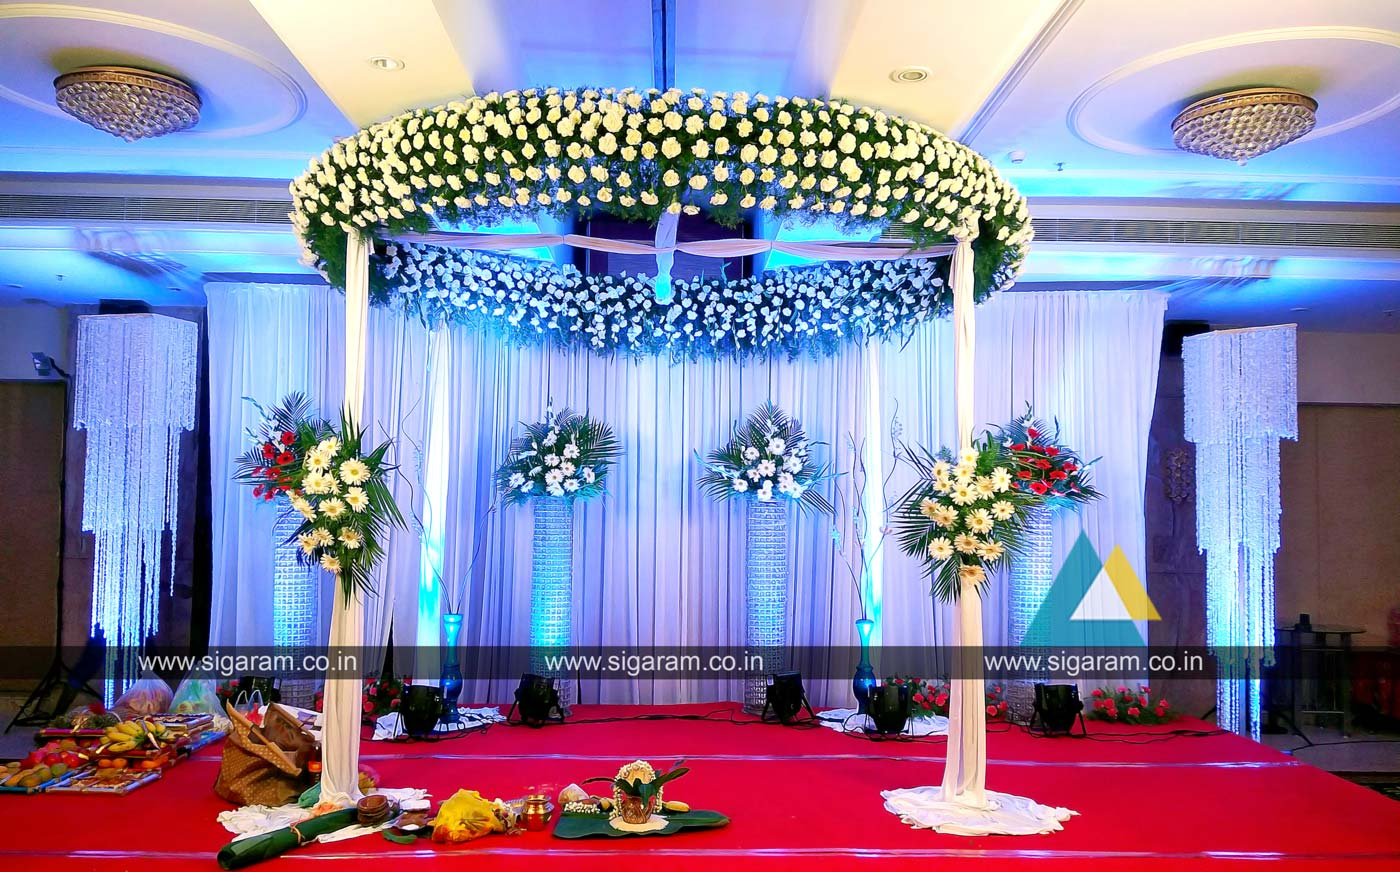 reception and wedding stage decoration at accord hotel puducherry sigaram wedding decorators. Black Bedroom Furniture Sets. Home Design Ideas